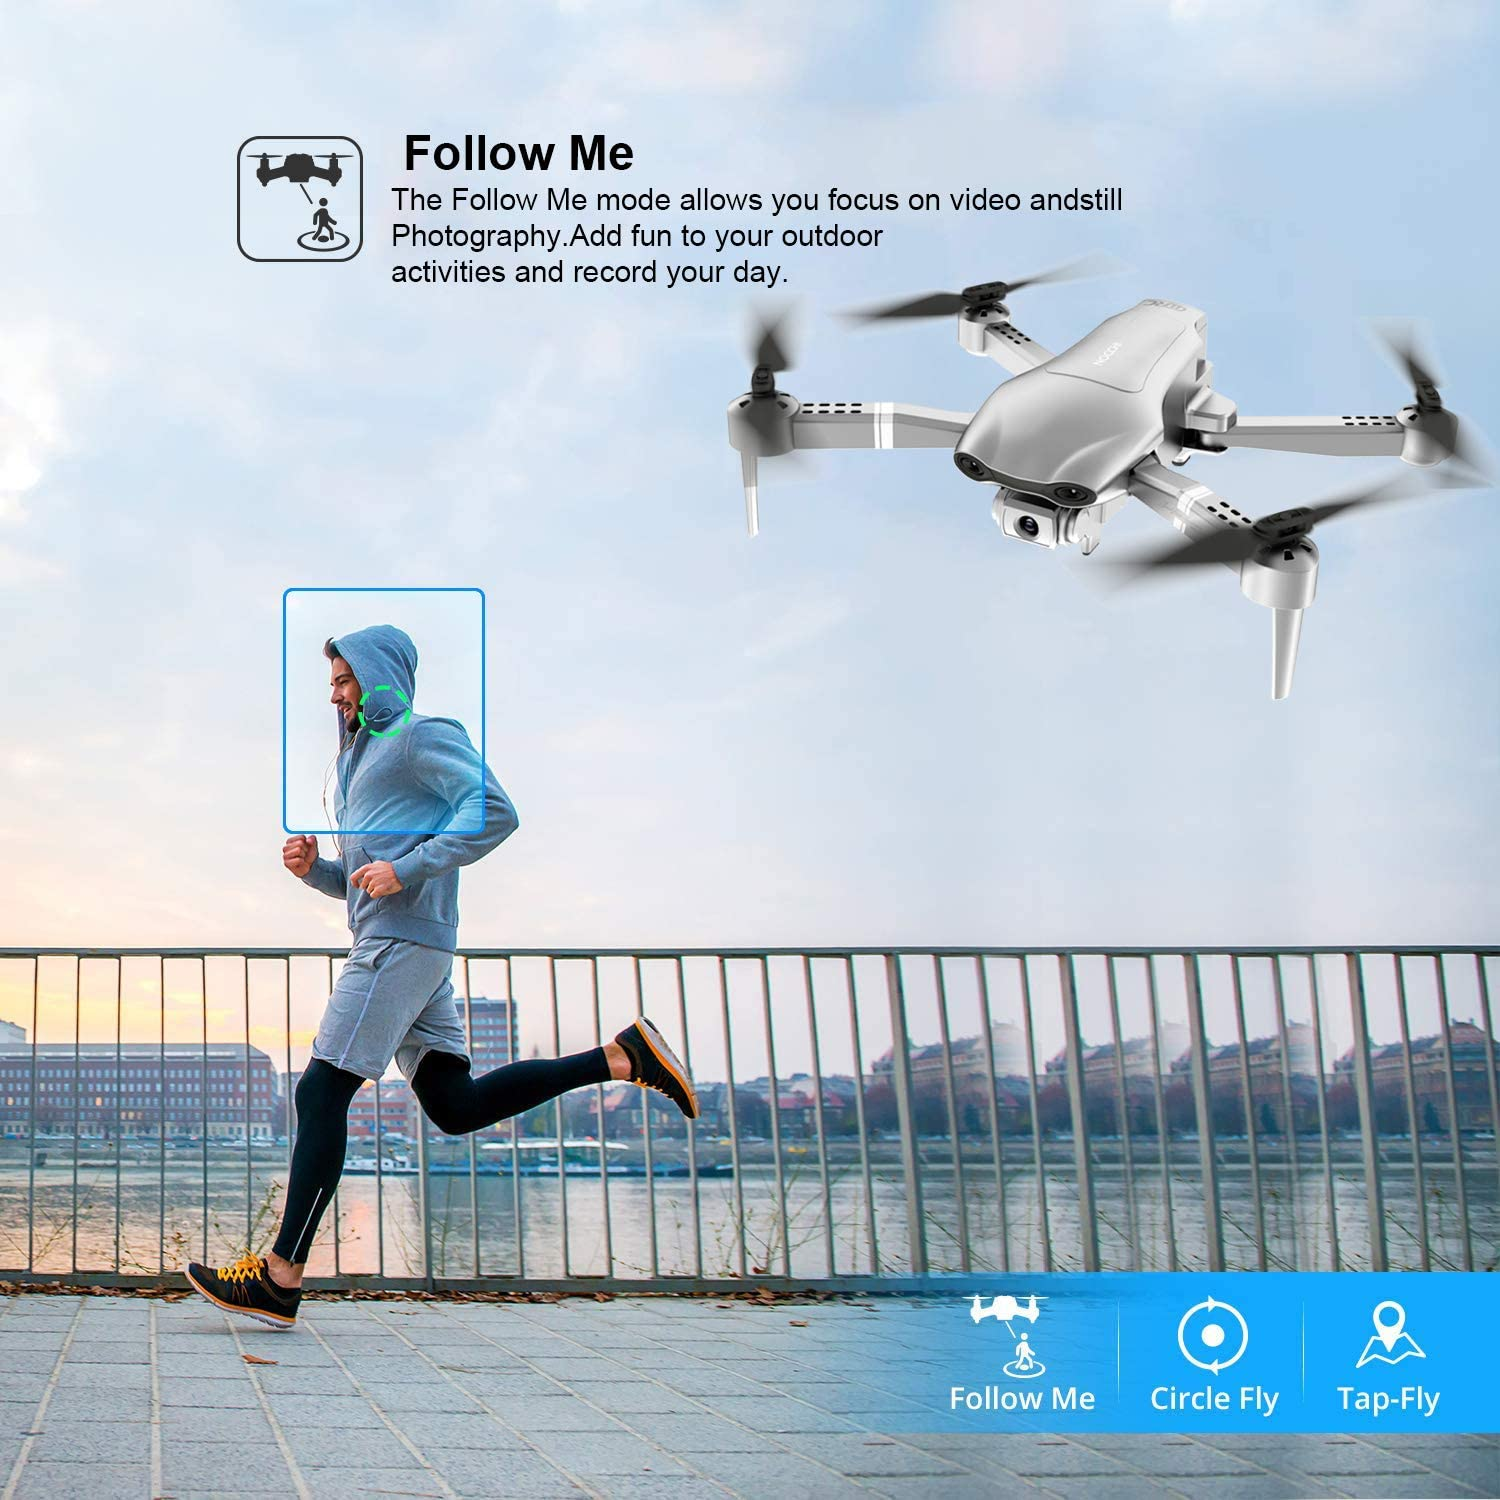 2021 NEW F3 drone/ GPS 4K 5G WiFi live video /FPV quadrotor flight 25 minutes rc distance 500m drone/ HD wide-angle dual camera enlarge